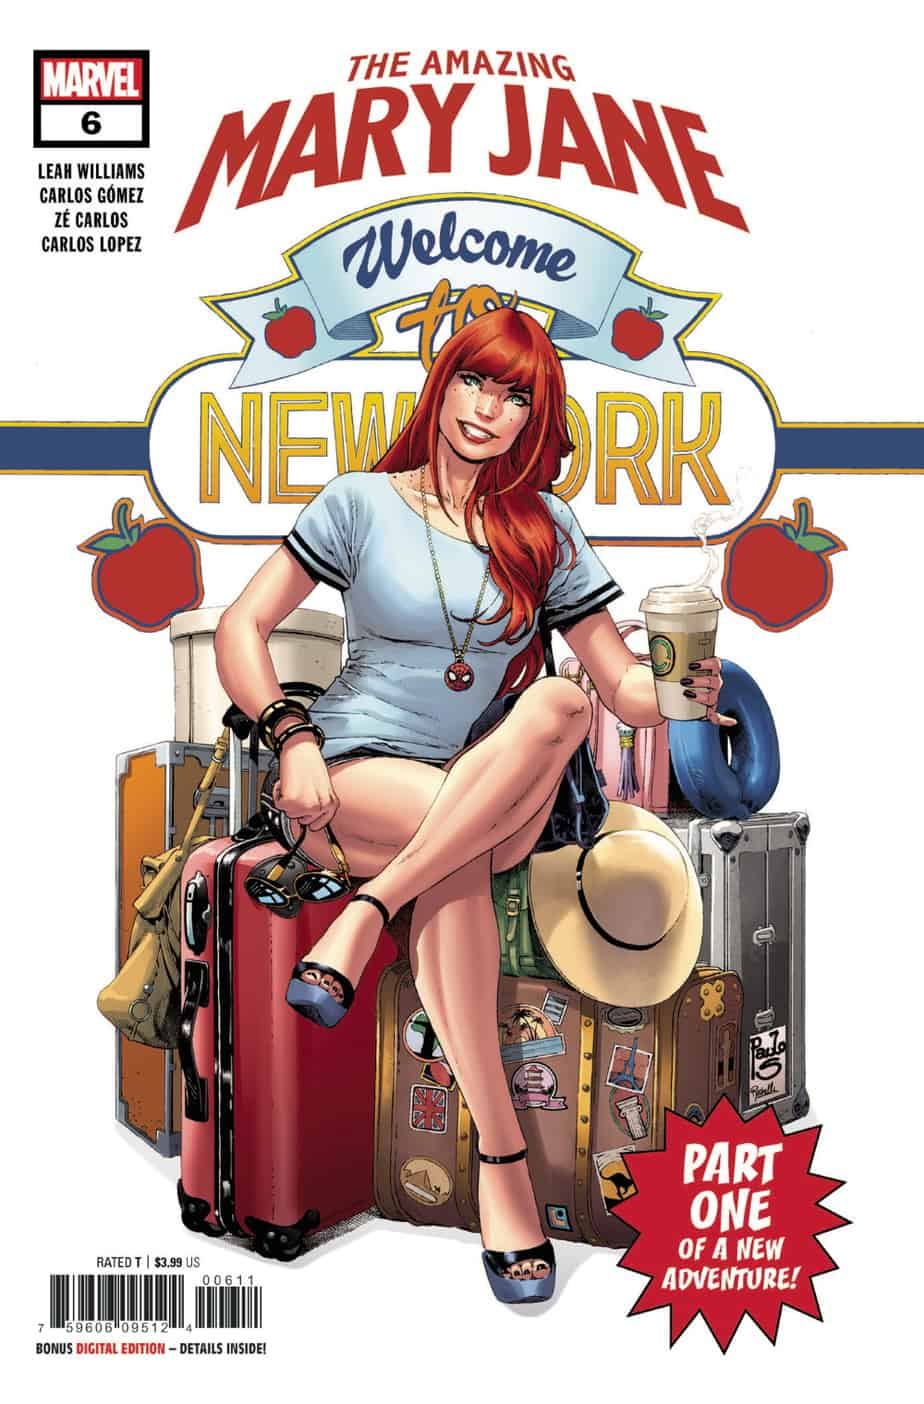 AMAZING MARY JANE #6 - Cover A